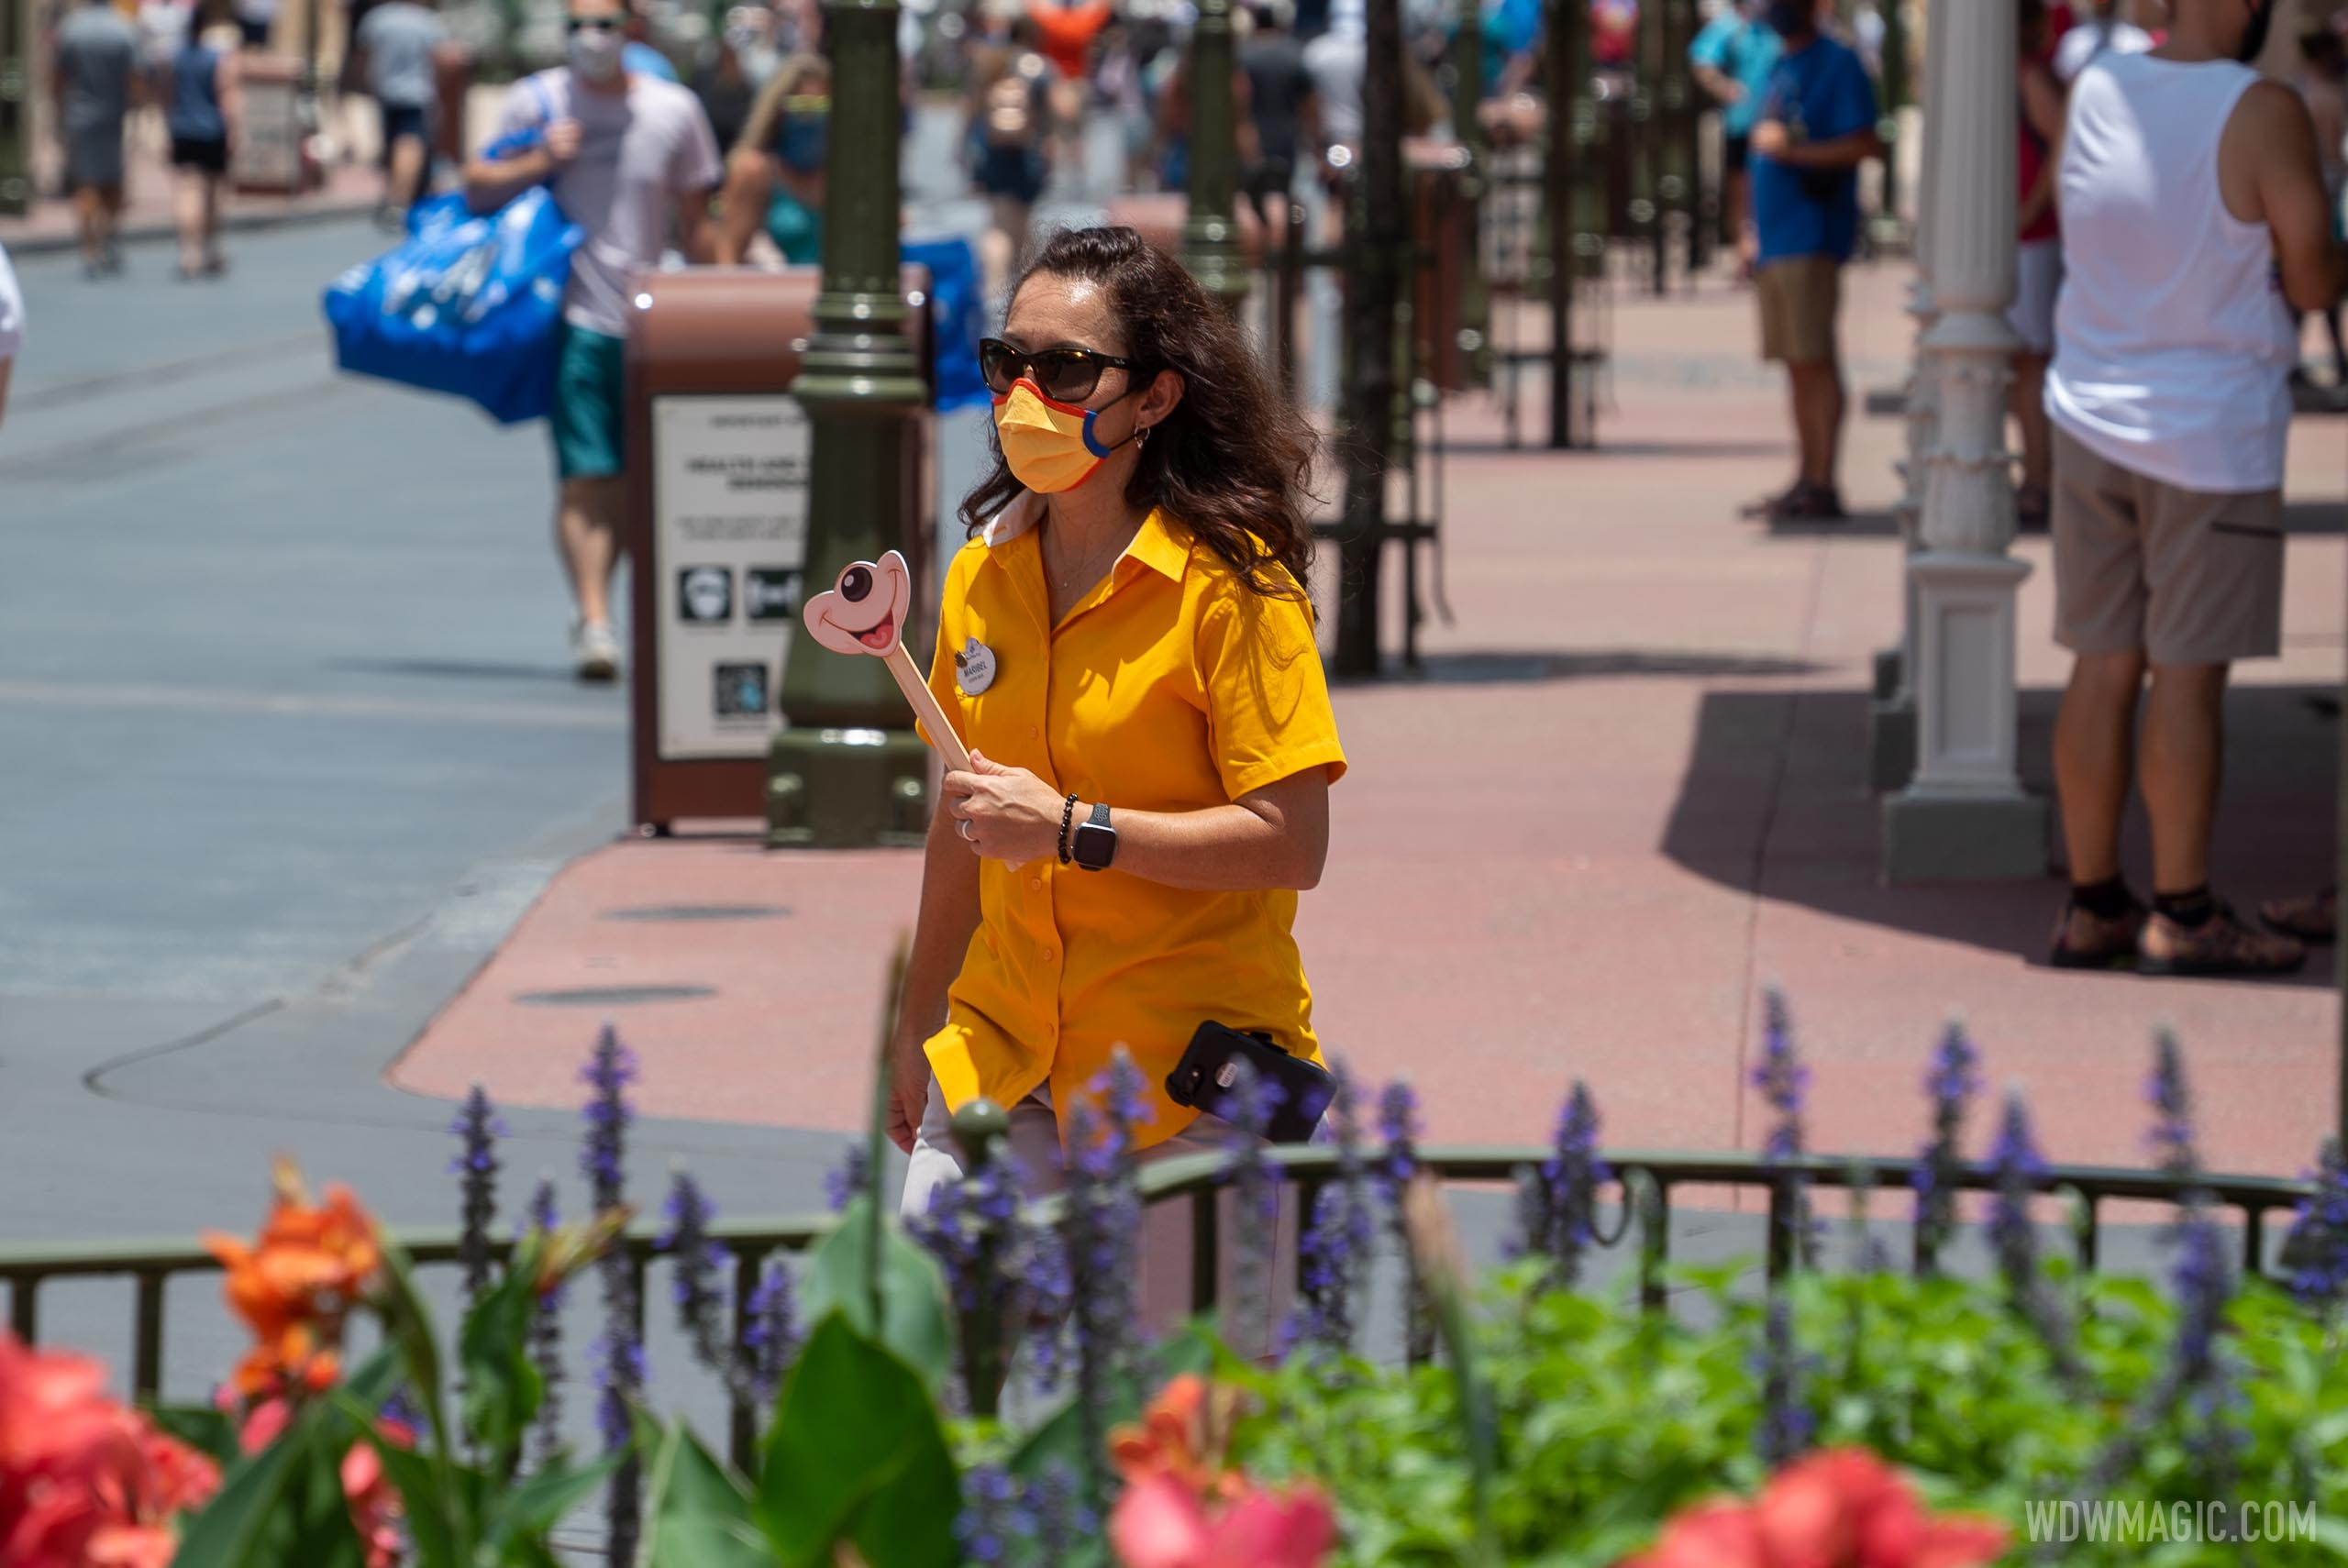 Special teams of Cast Members enforce mask use at Magic Kingdom